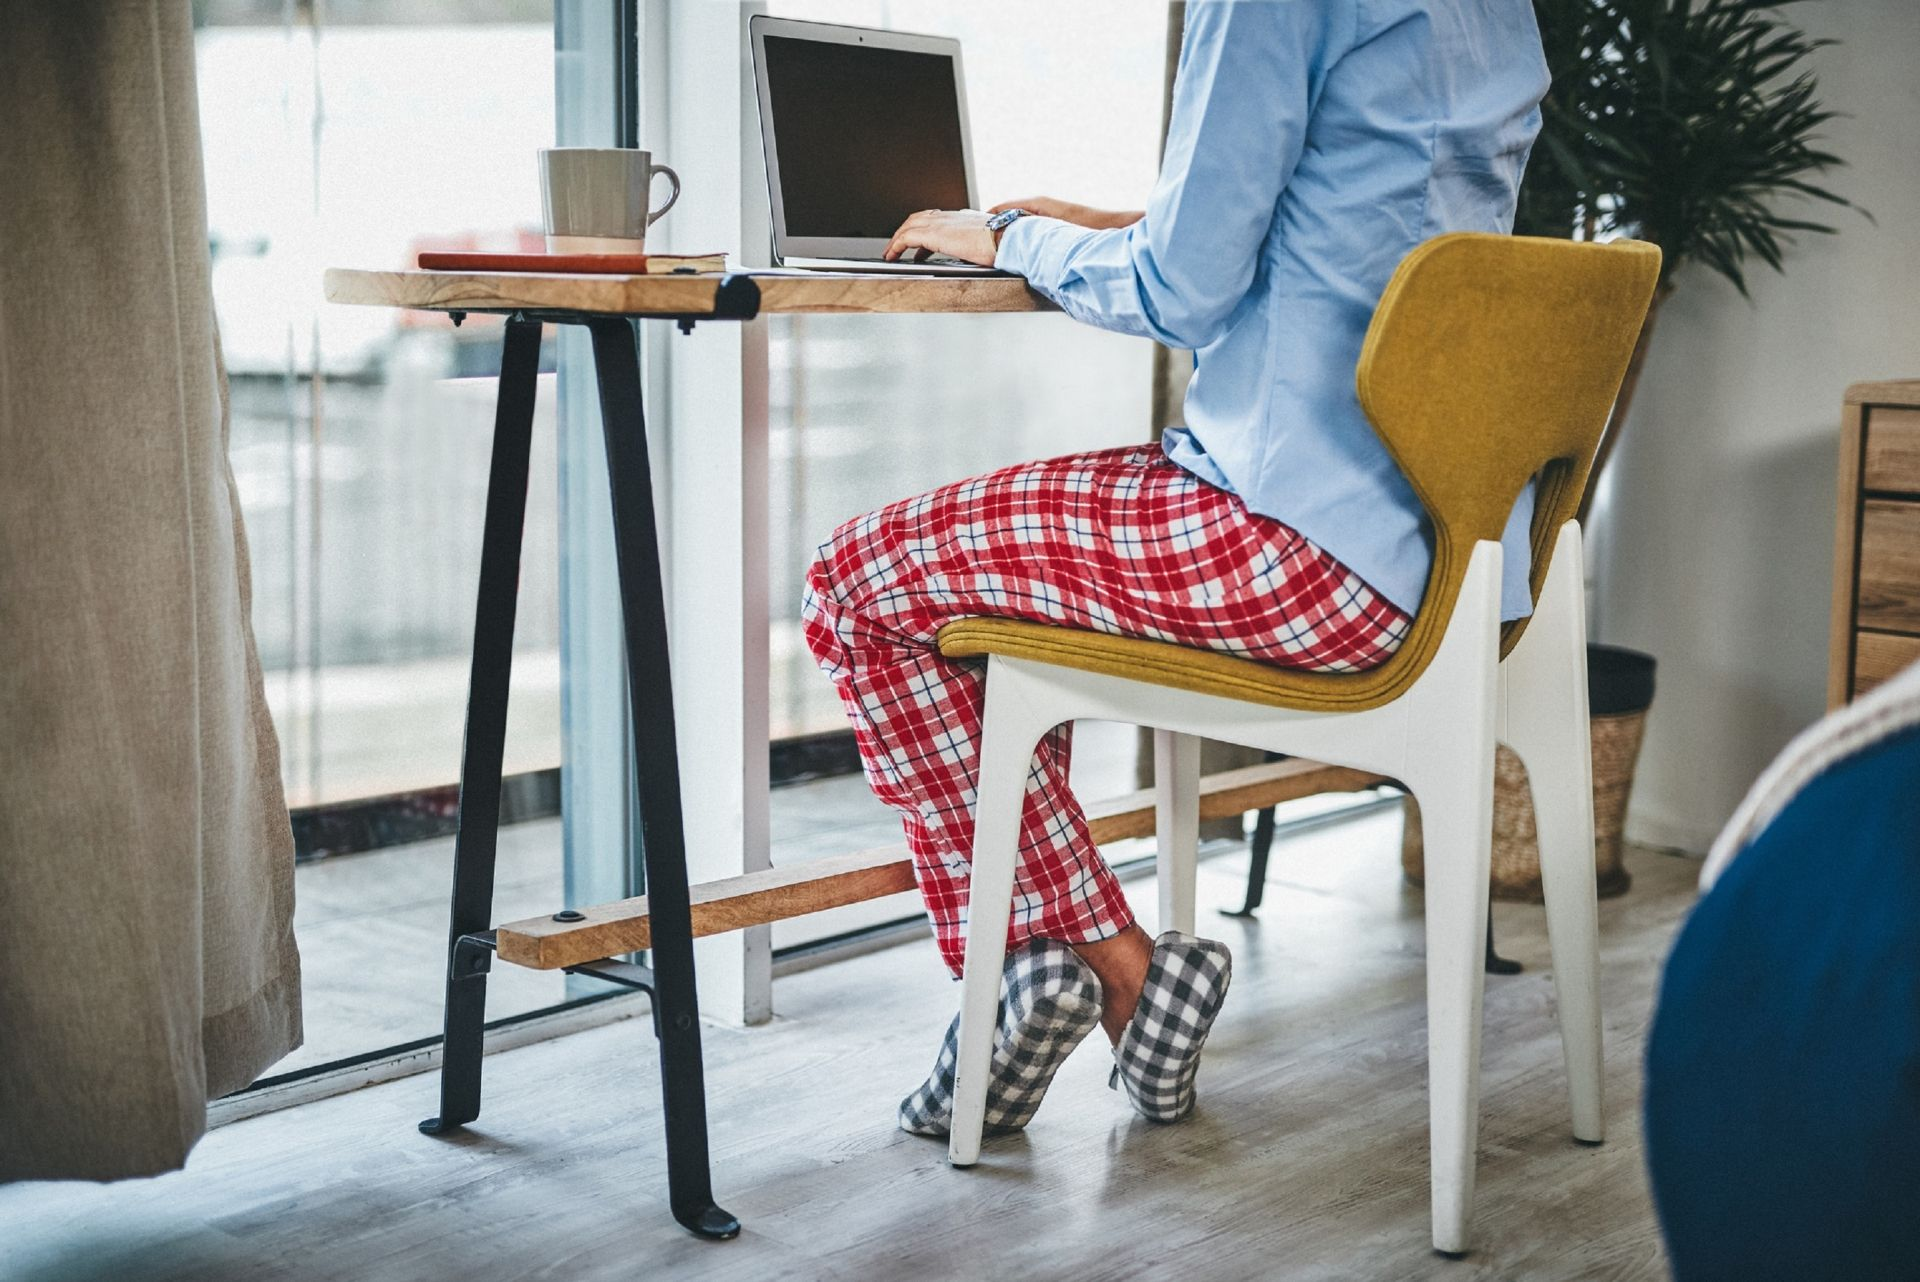 Lounge pants and slippers could become very popular this winter.  © Charday Penn / IStock.com